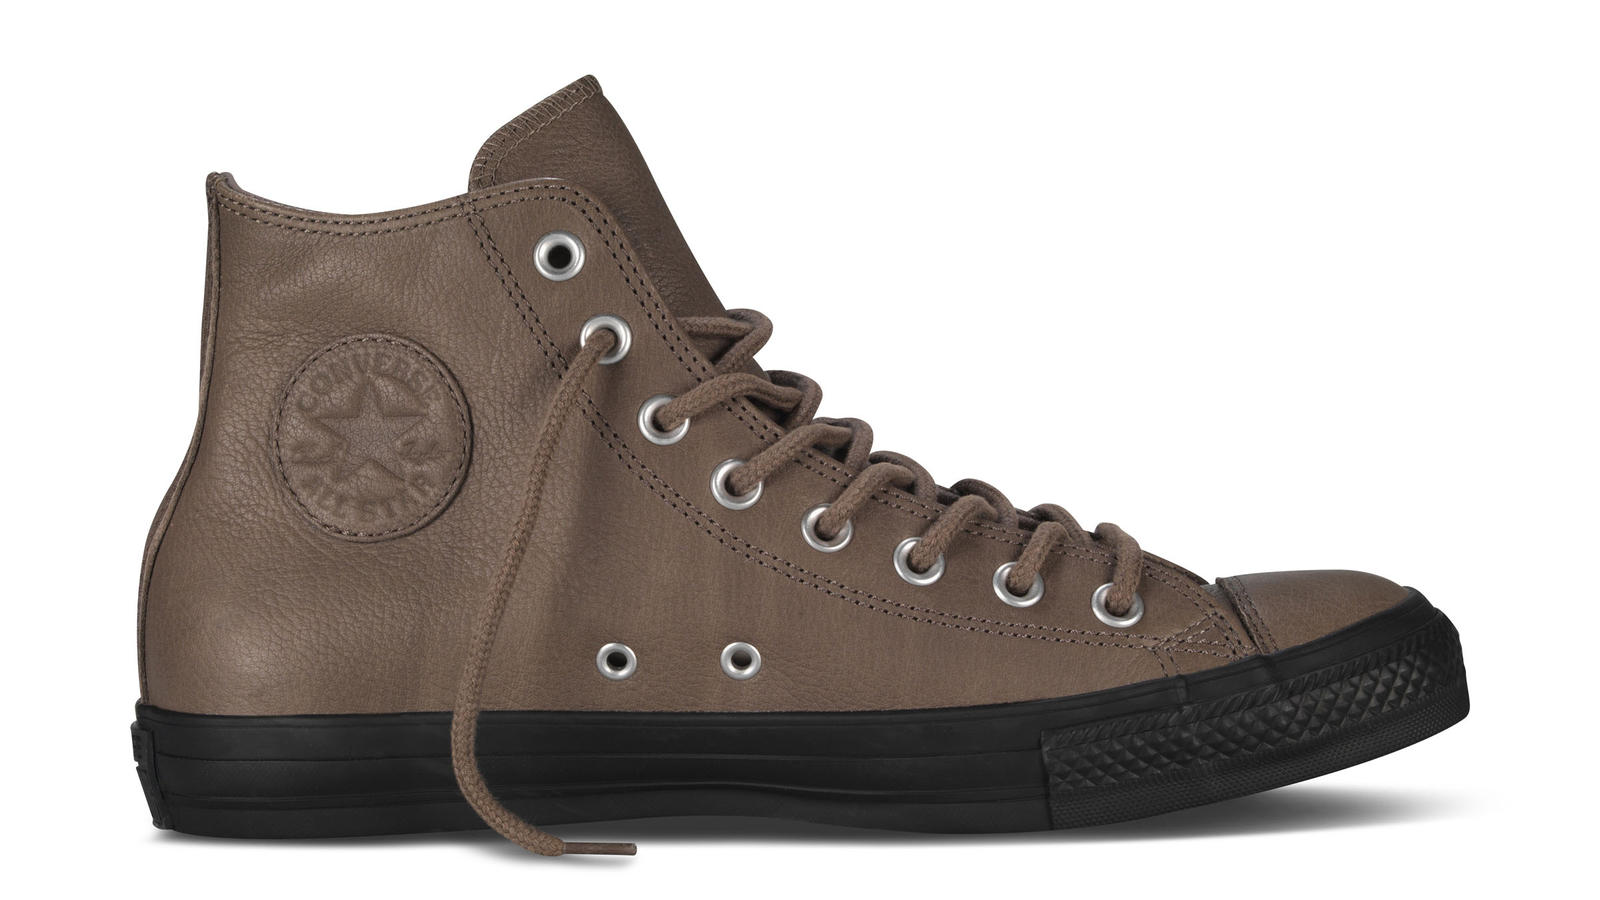 Converse Announces Holiday 2013 Footwear Collections Nike News